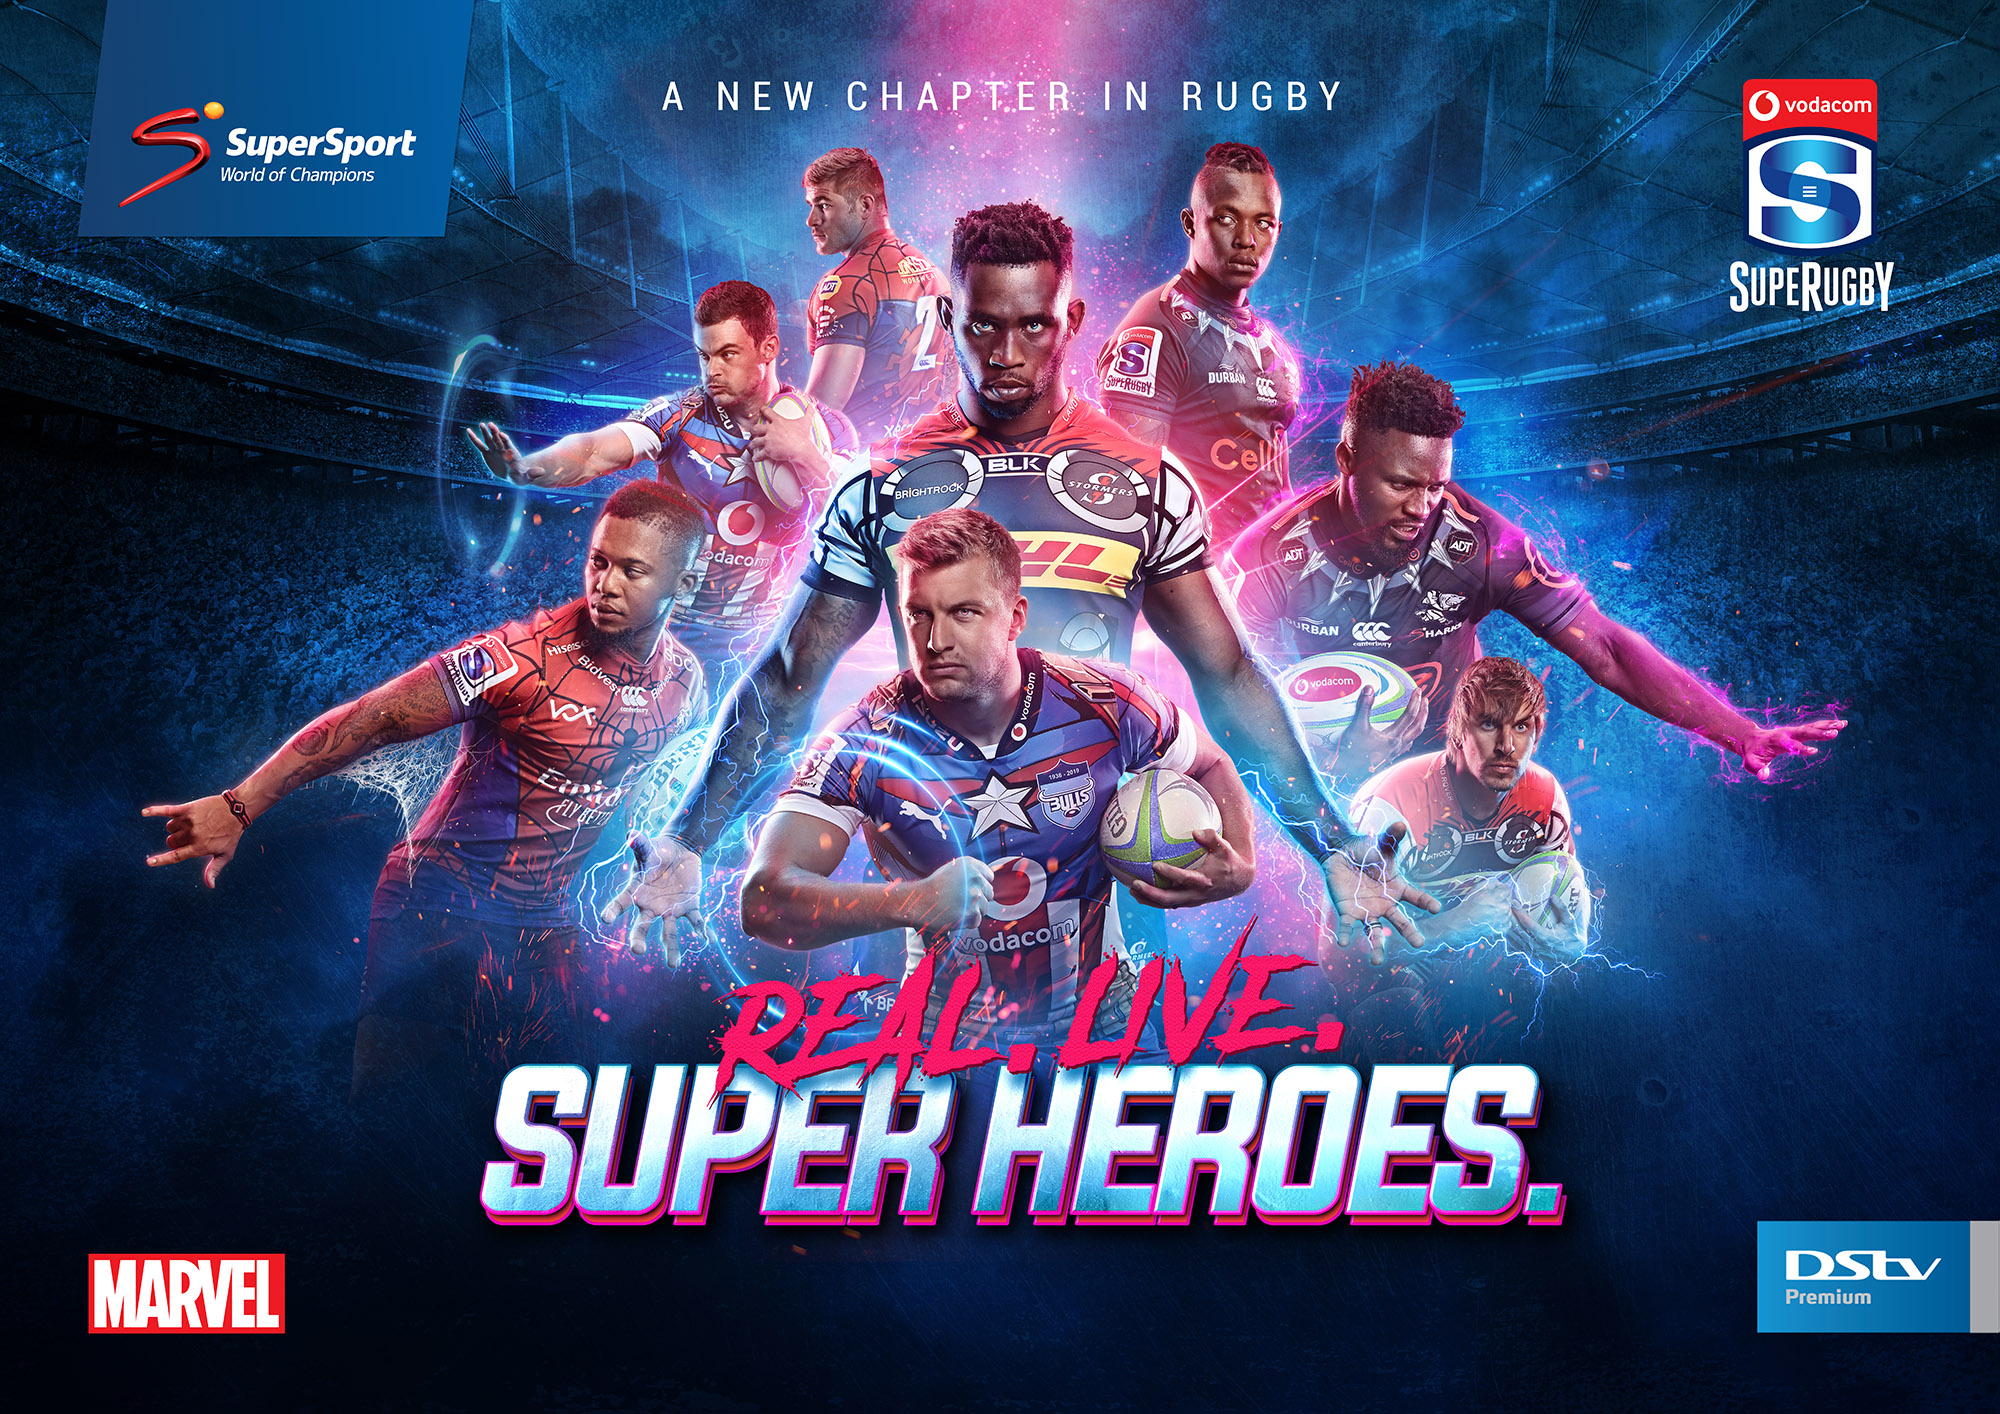 supersport superrugby marvel dstv real live shoot brandon barnard photography